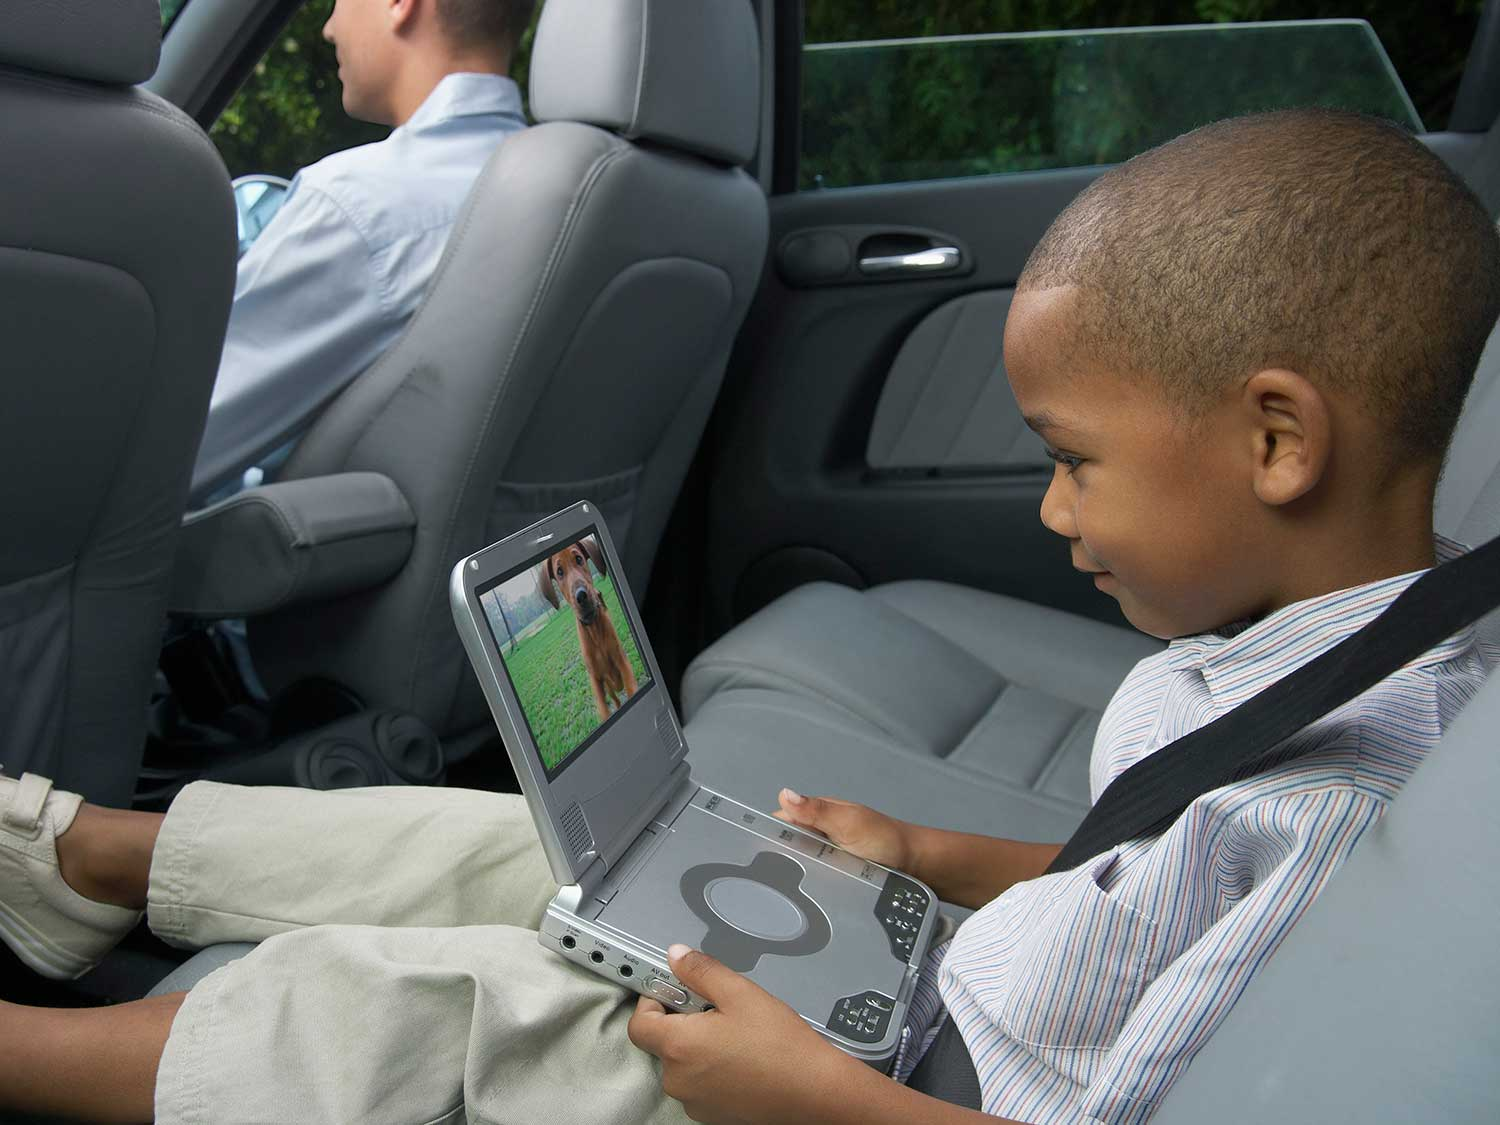 Boy watching movie on portable DVD player.